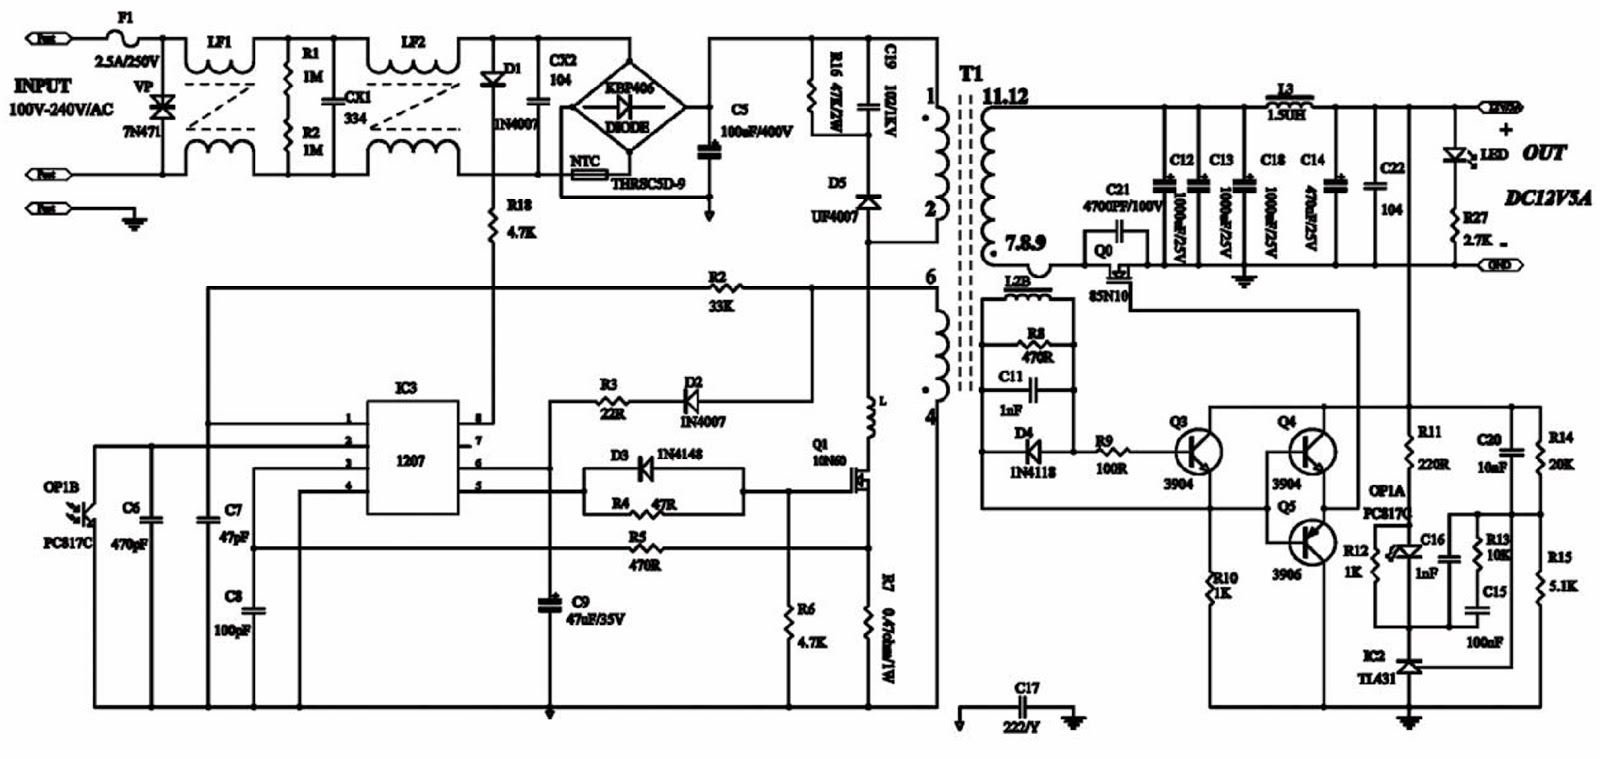 small resolution of tv schematic circuit diagram wiring diagram load samsung lcd tv schematic diagram